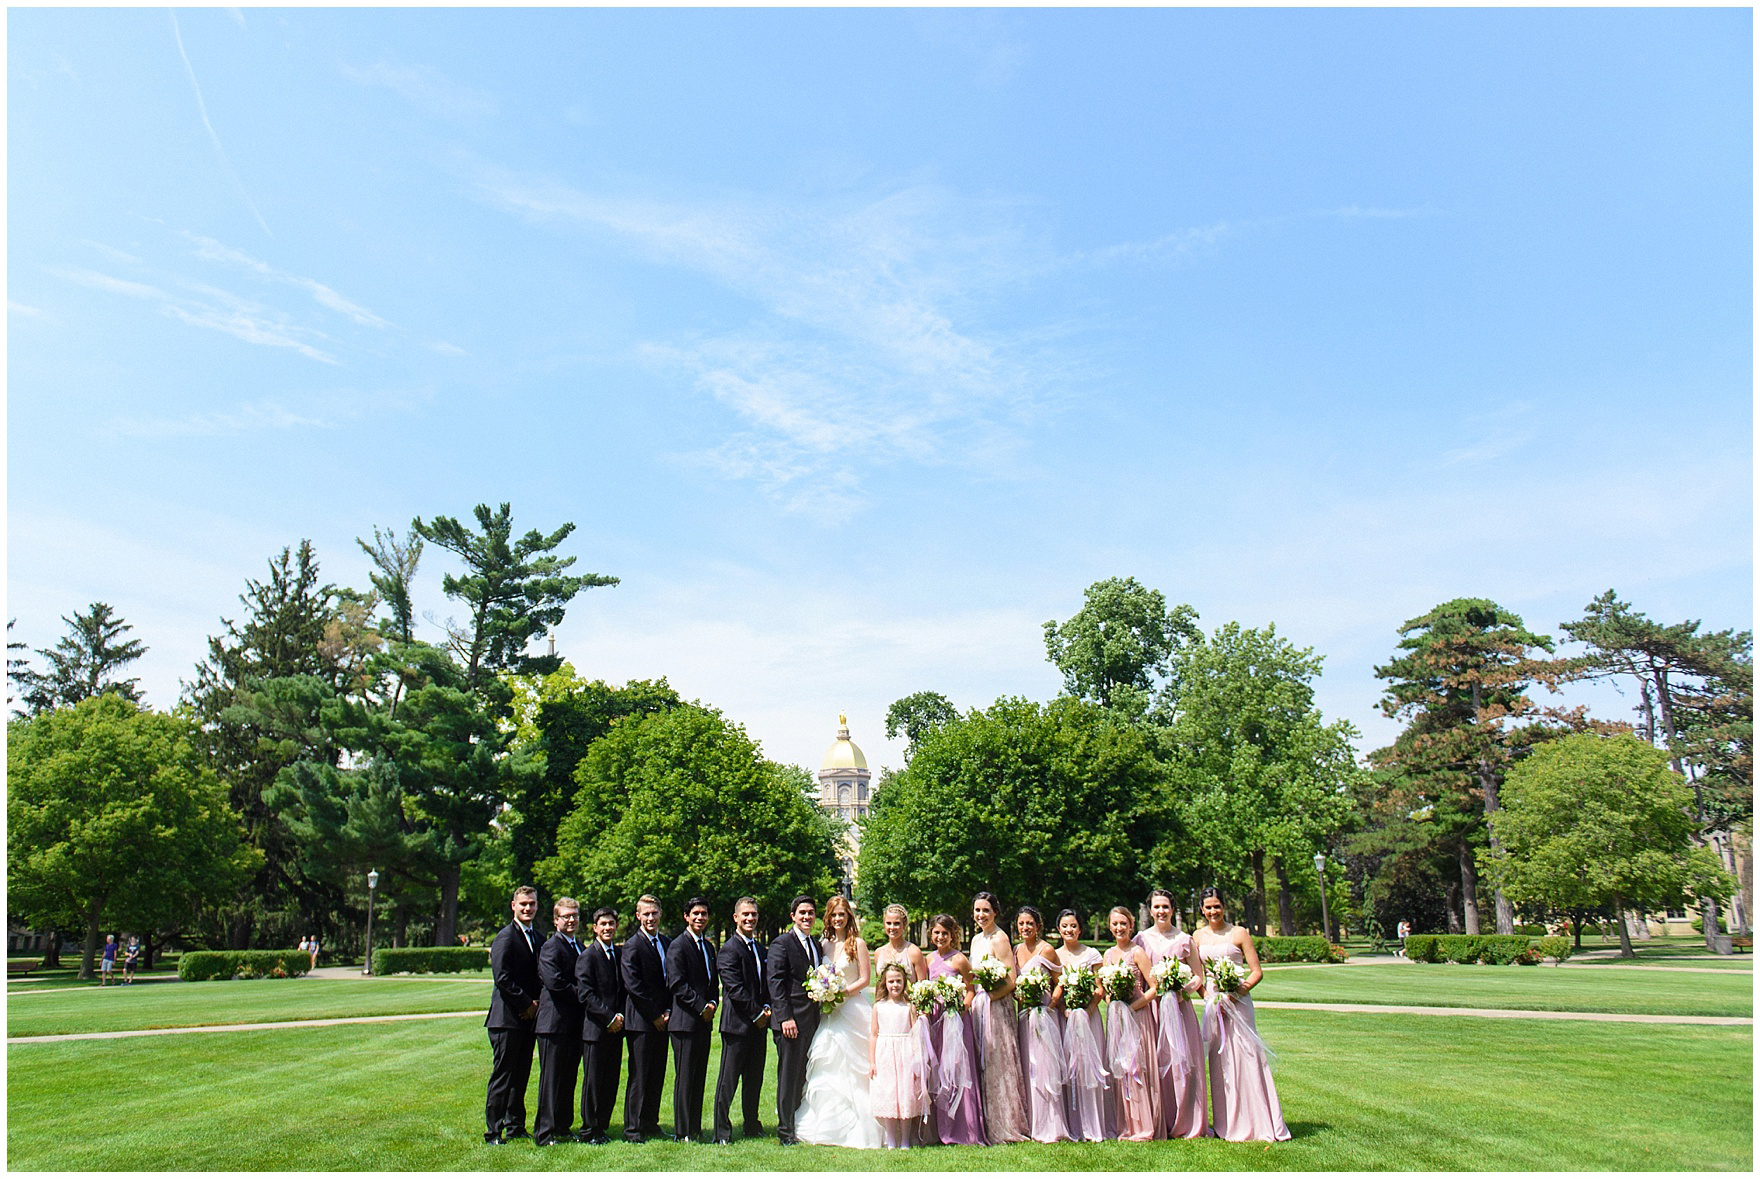 A bridal party poses for portraits on campus during a University of Notre Dame wedding.